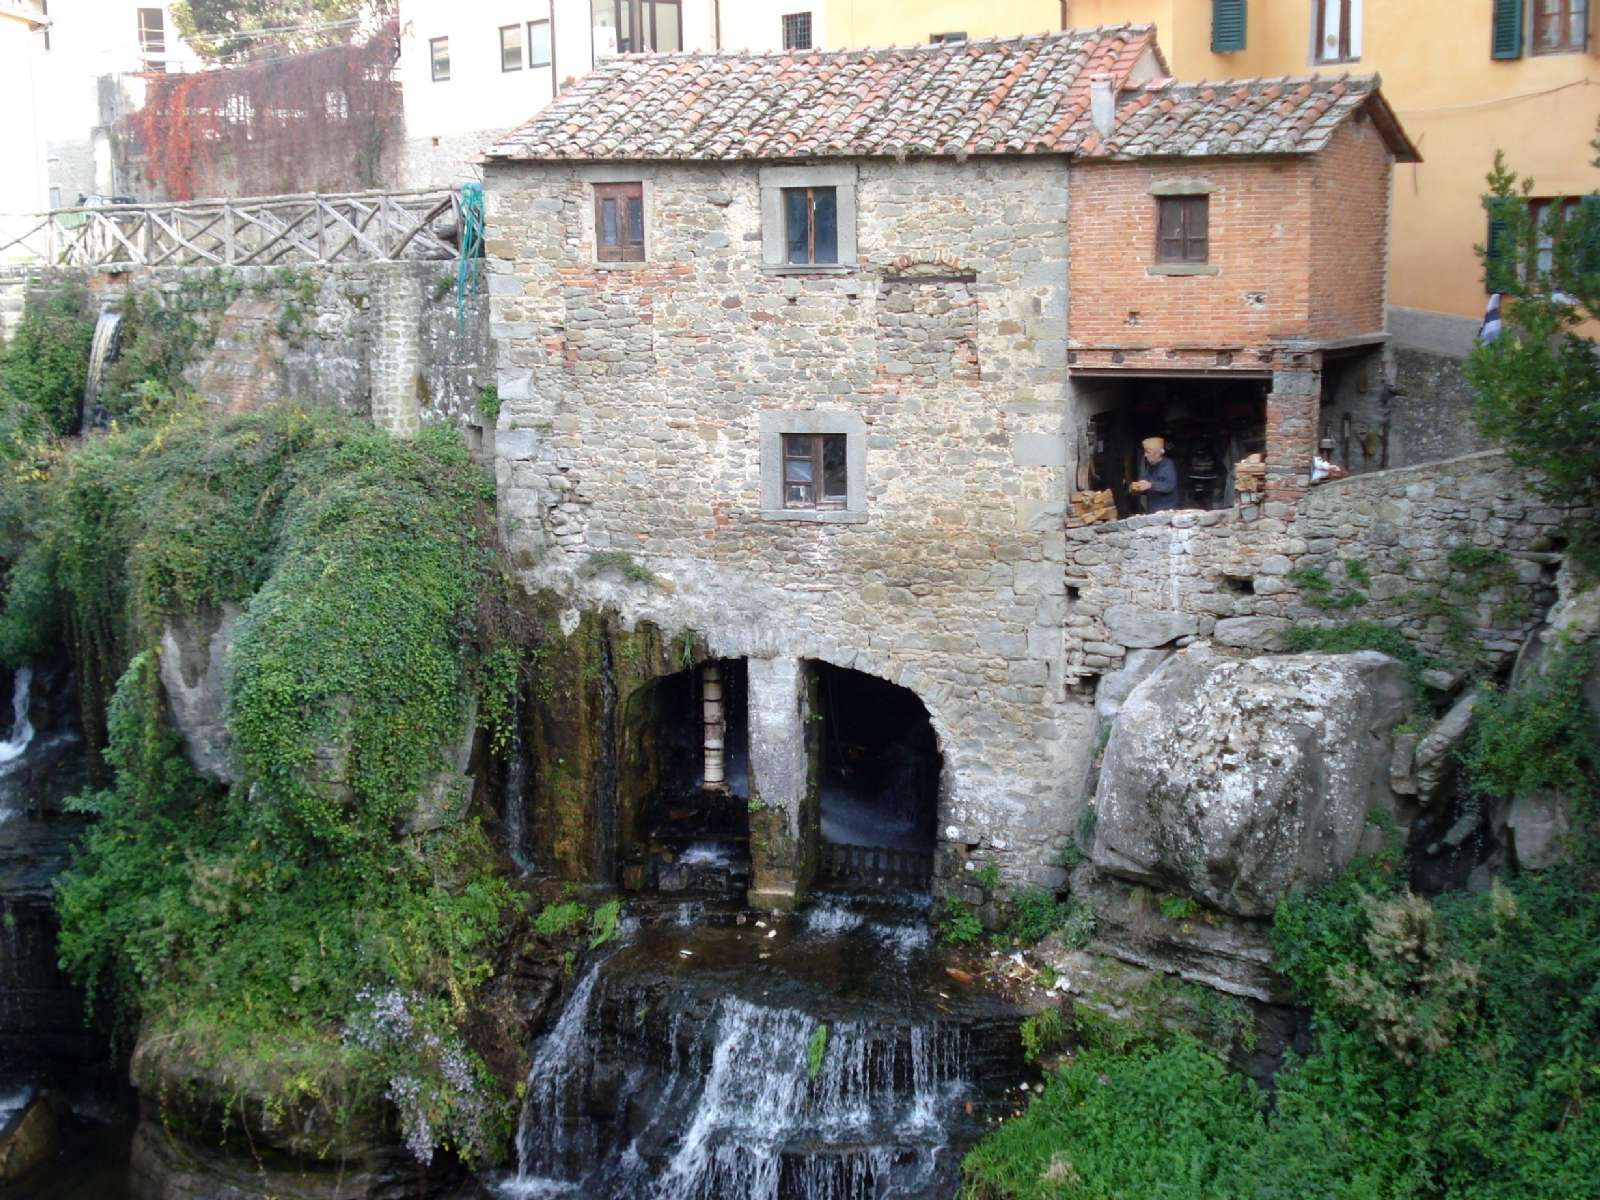 The old mill in Loro Ciuffenna